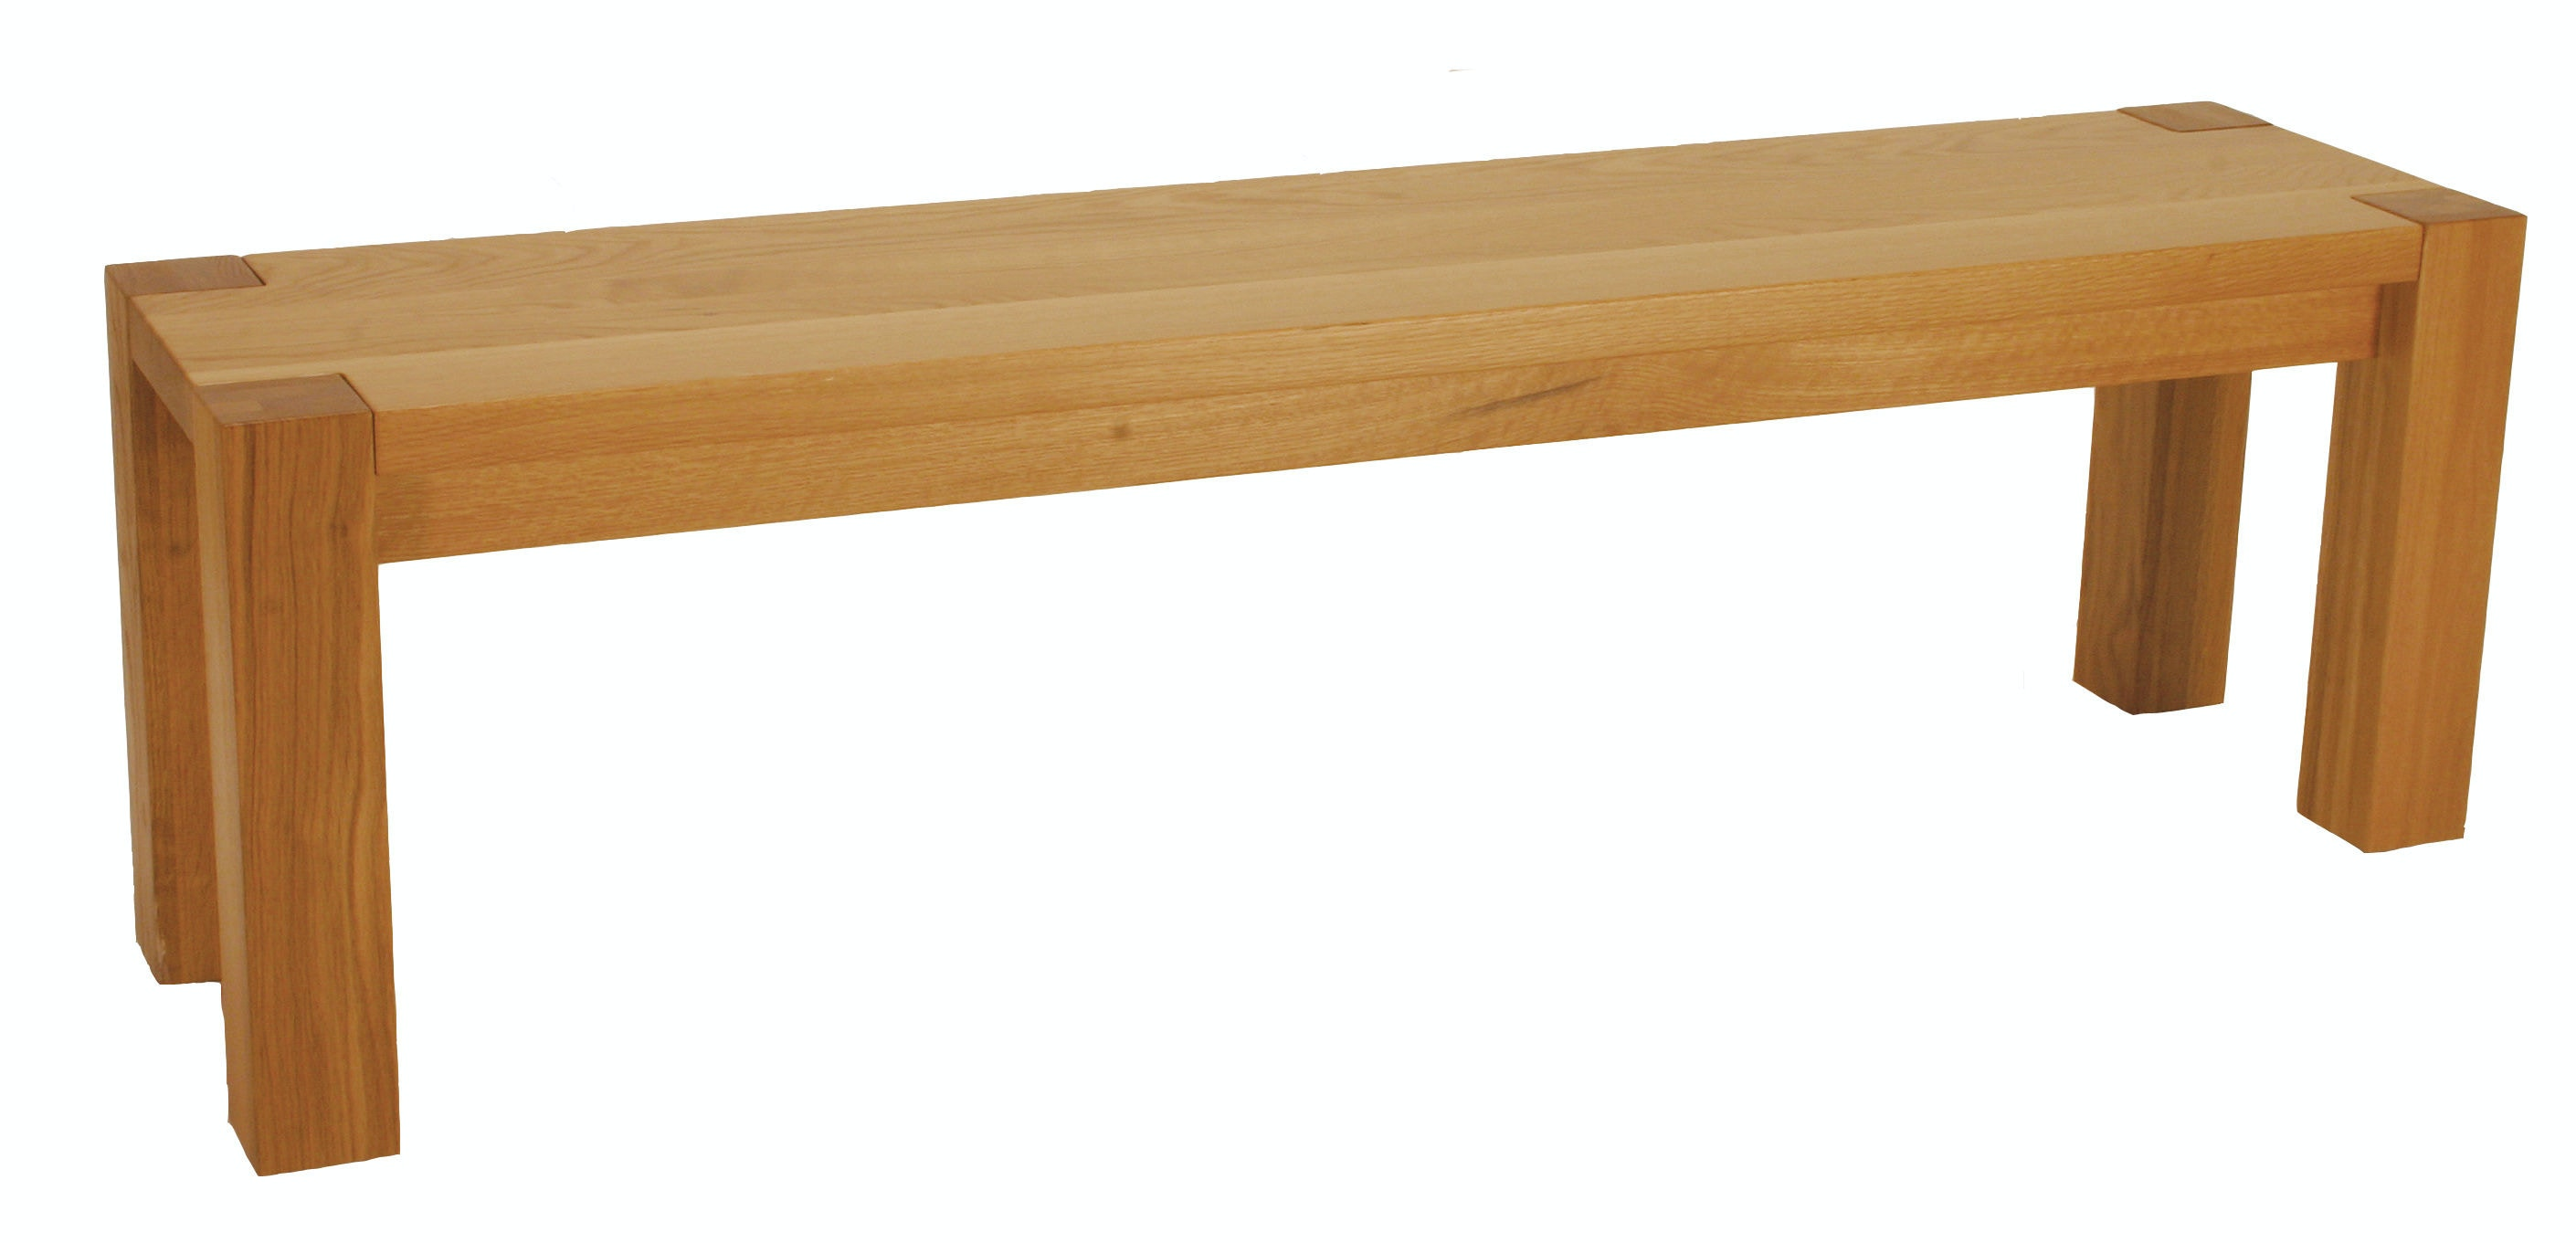 Canal Dover Furniture Dining Room Sequoia Bench